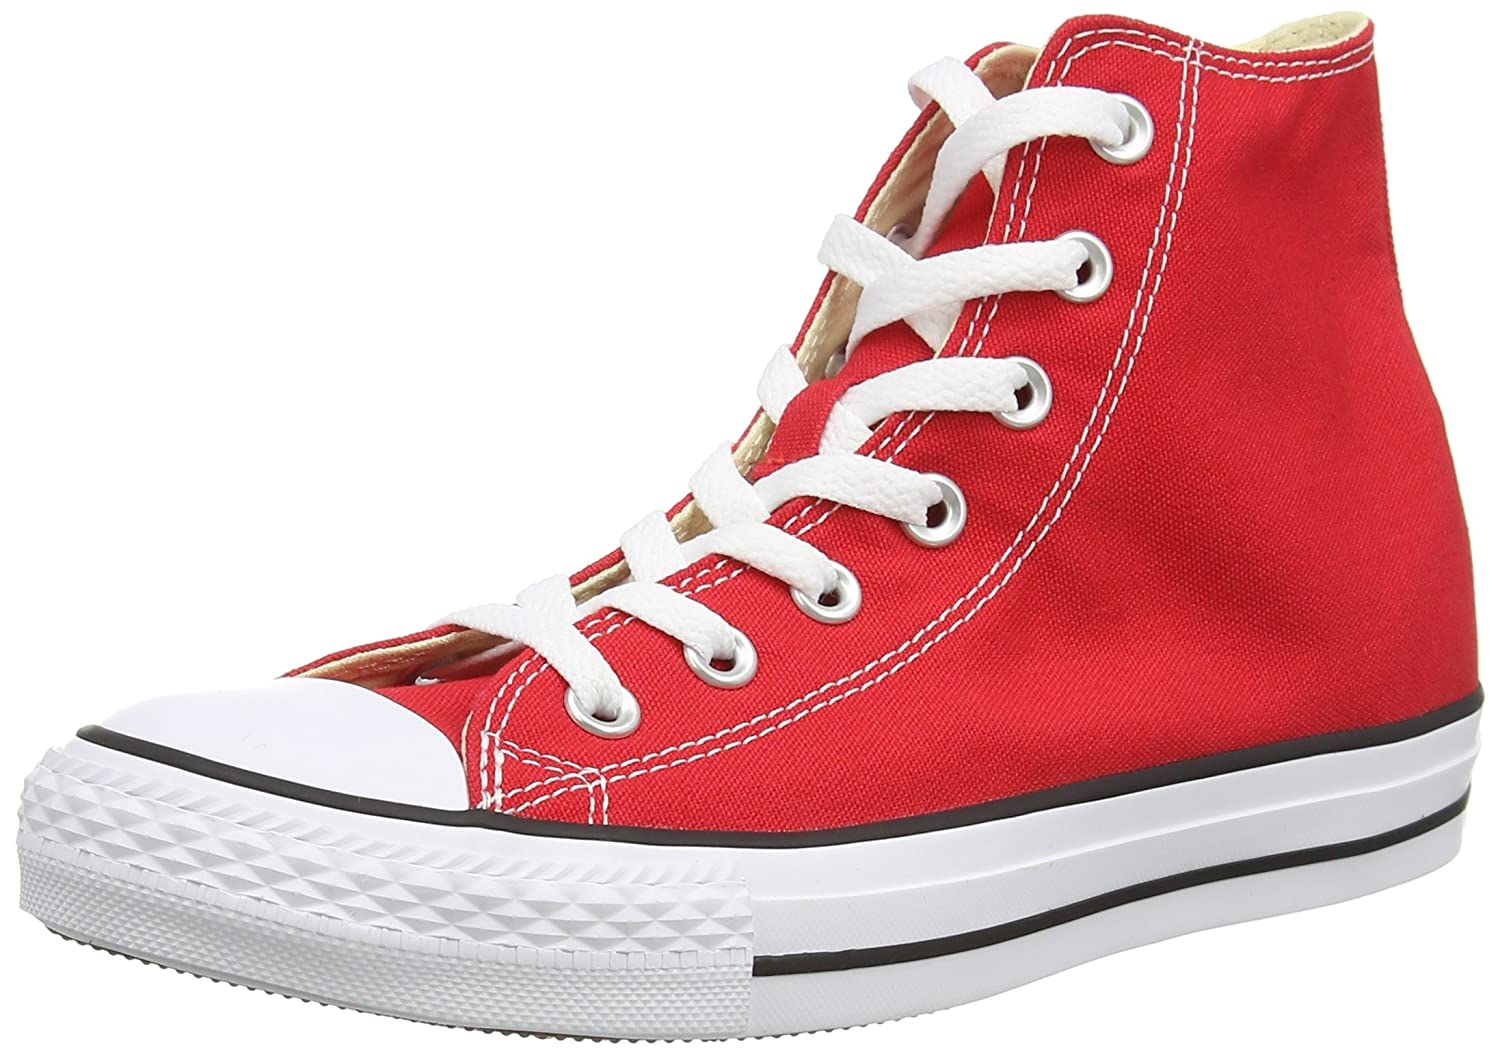 Converse Unisex Chuck Taylor All-Star High-Top Casual Sneakers in Classic Style and Color and Durable Canvas Uppers B01J57WC90 47 M EU / 15 B(M) US Women / 13 D(M) US Men|Red